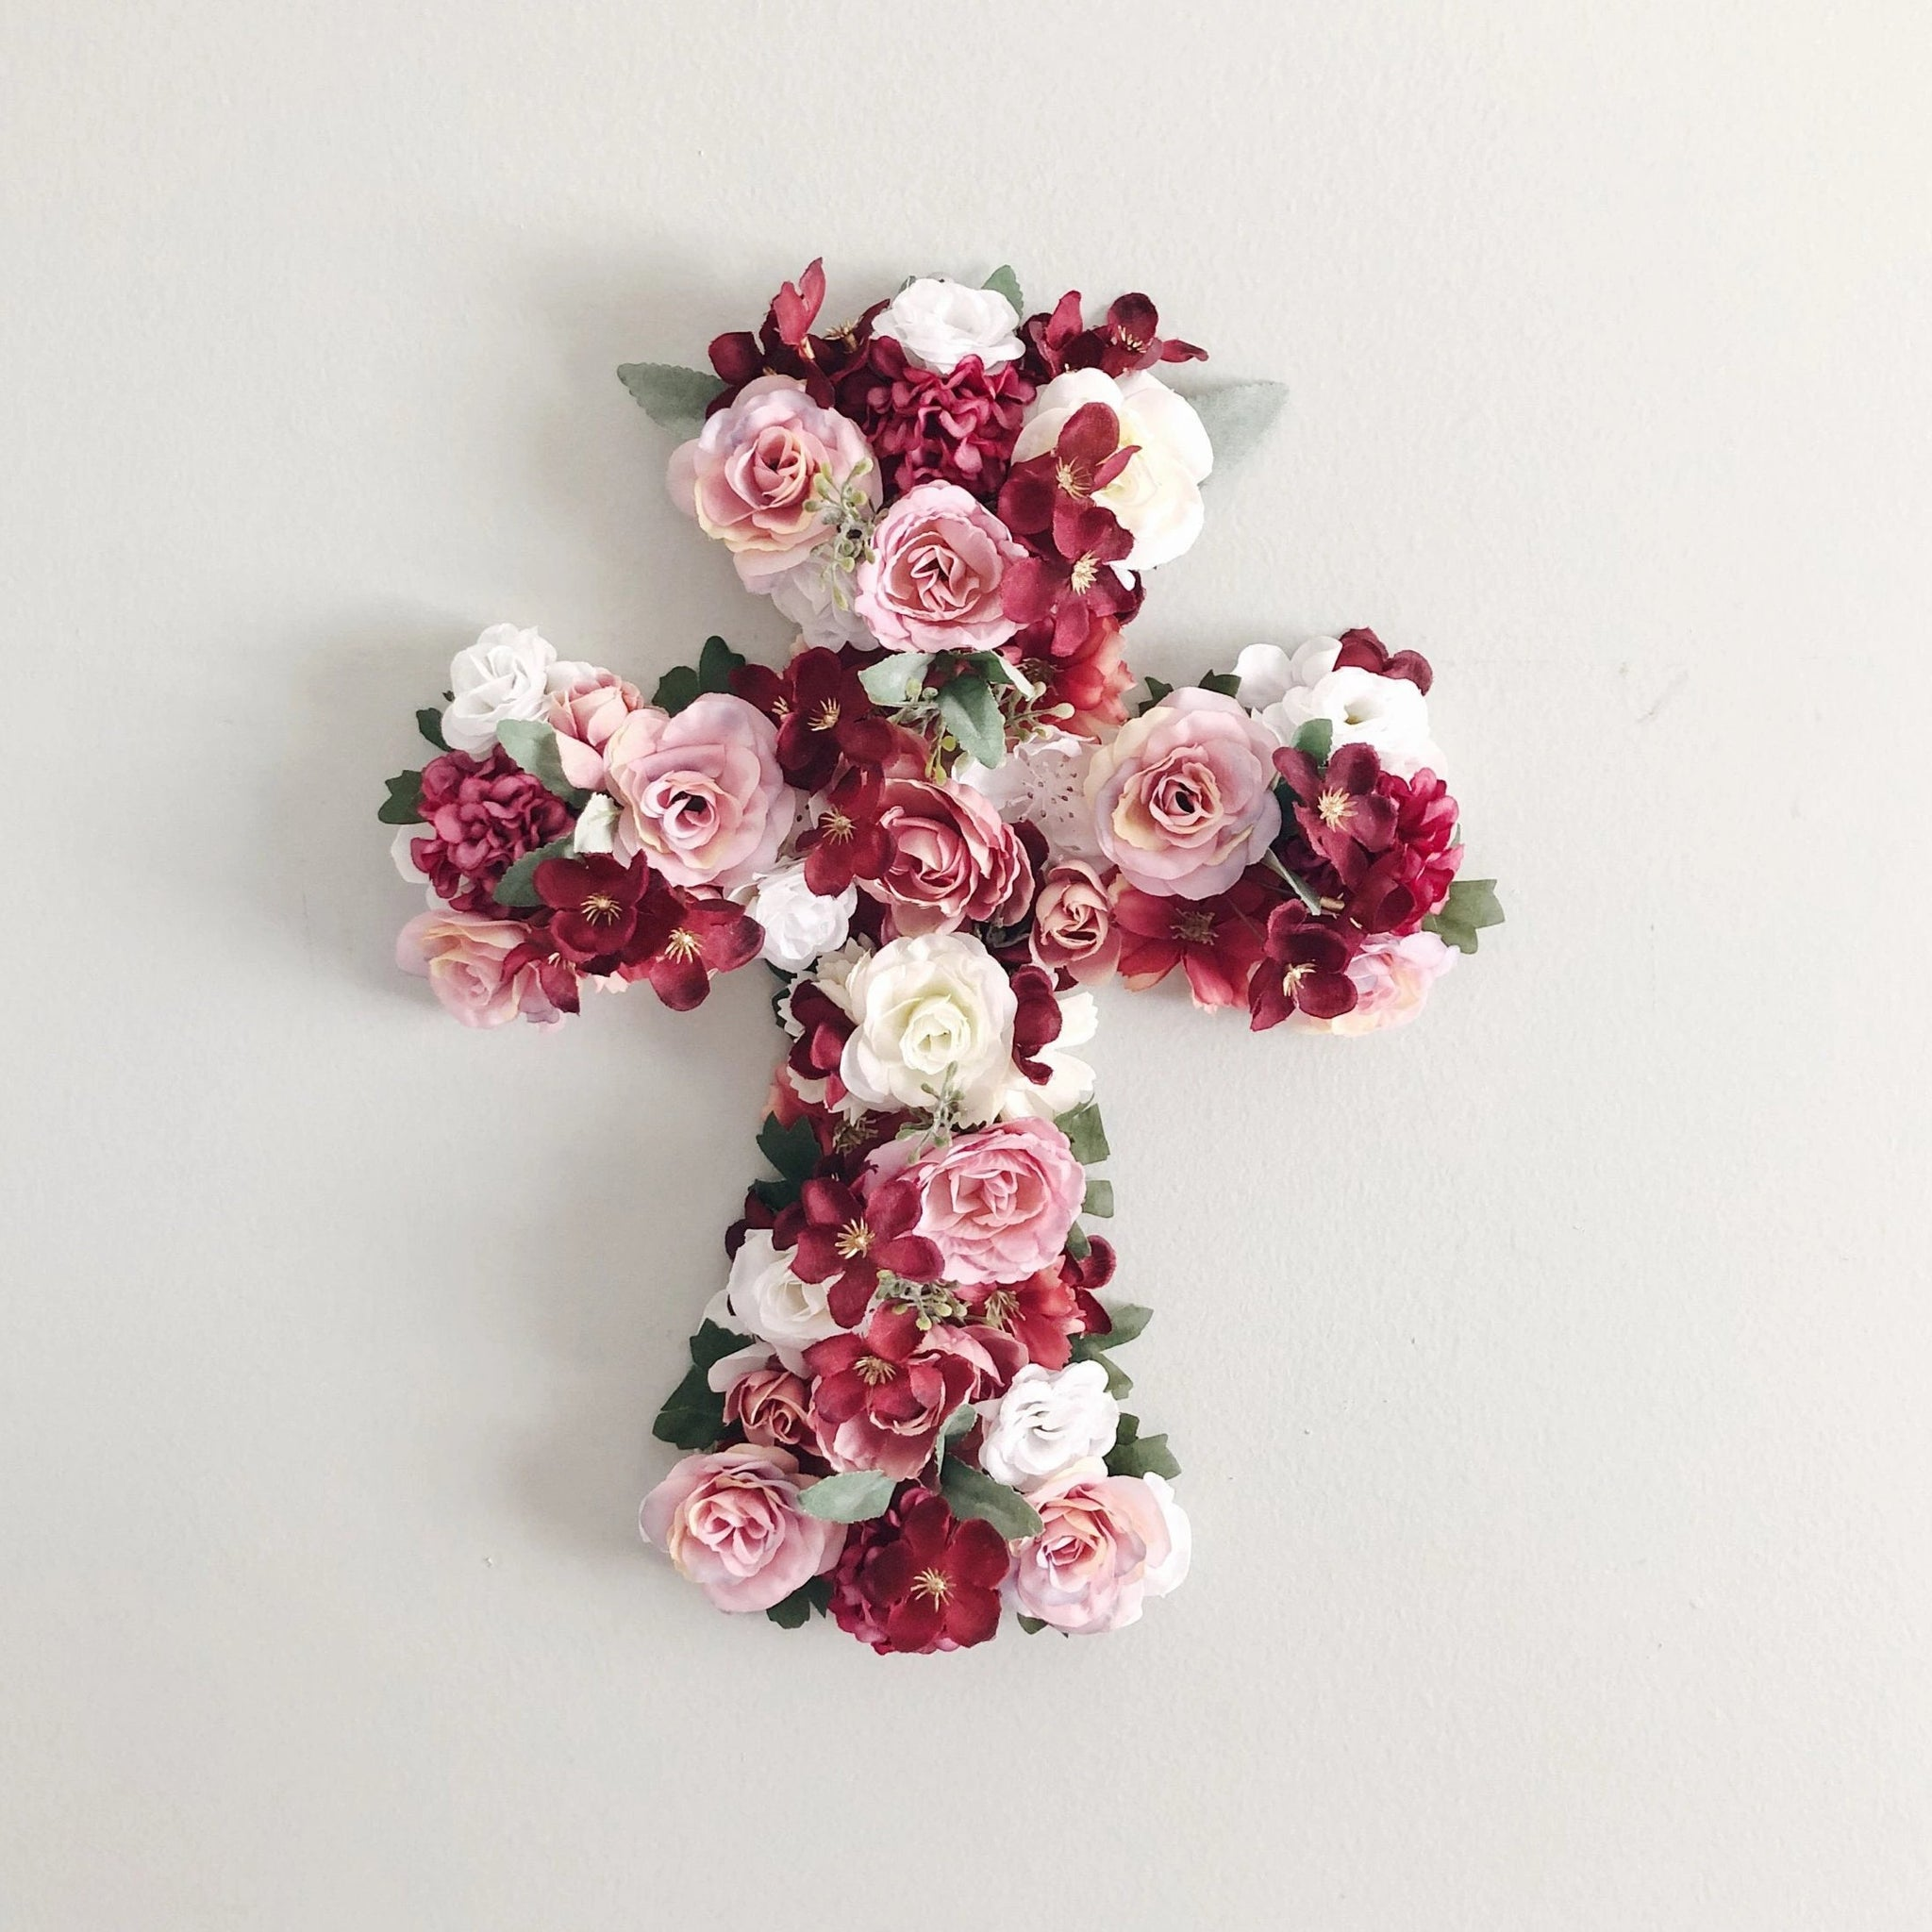 Baptism Decorations Girl, Baptism Cross, baptism banner, christening banner, First Communion Decor, Baptism Gift, Baptism Backdrop